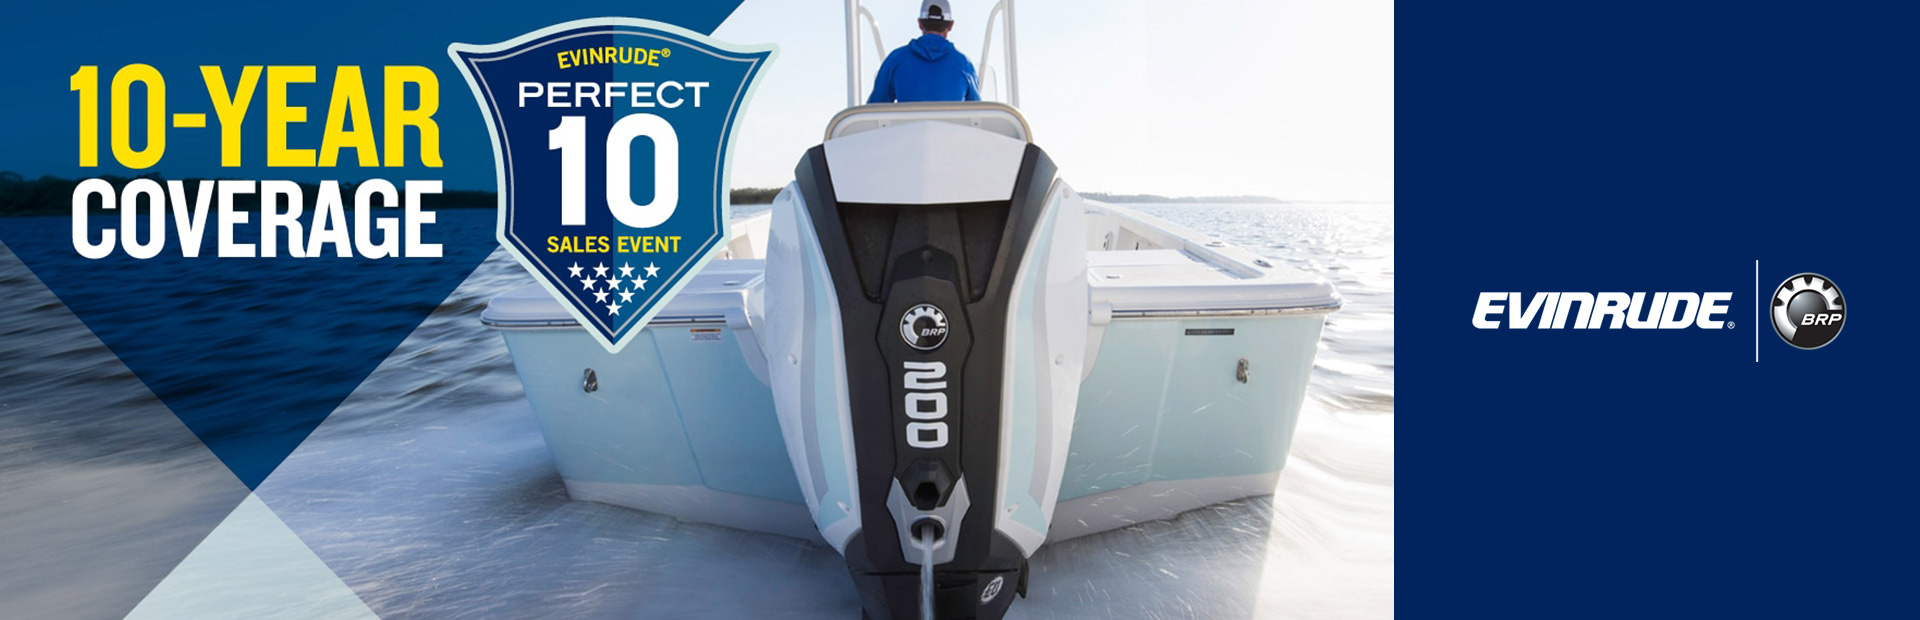 Evinrude® Perfect 10 Sales Event